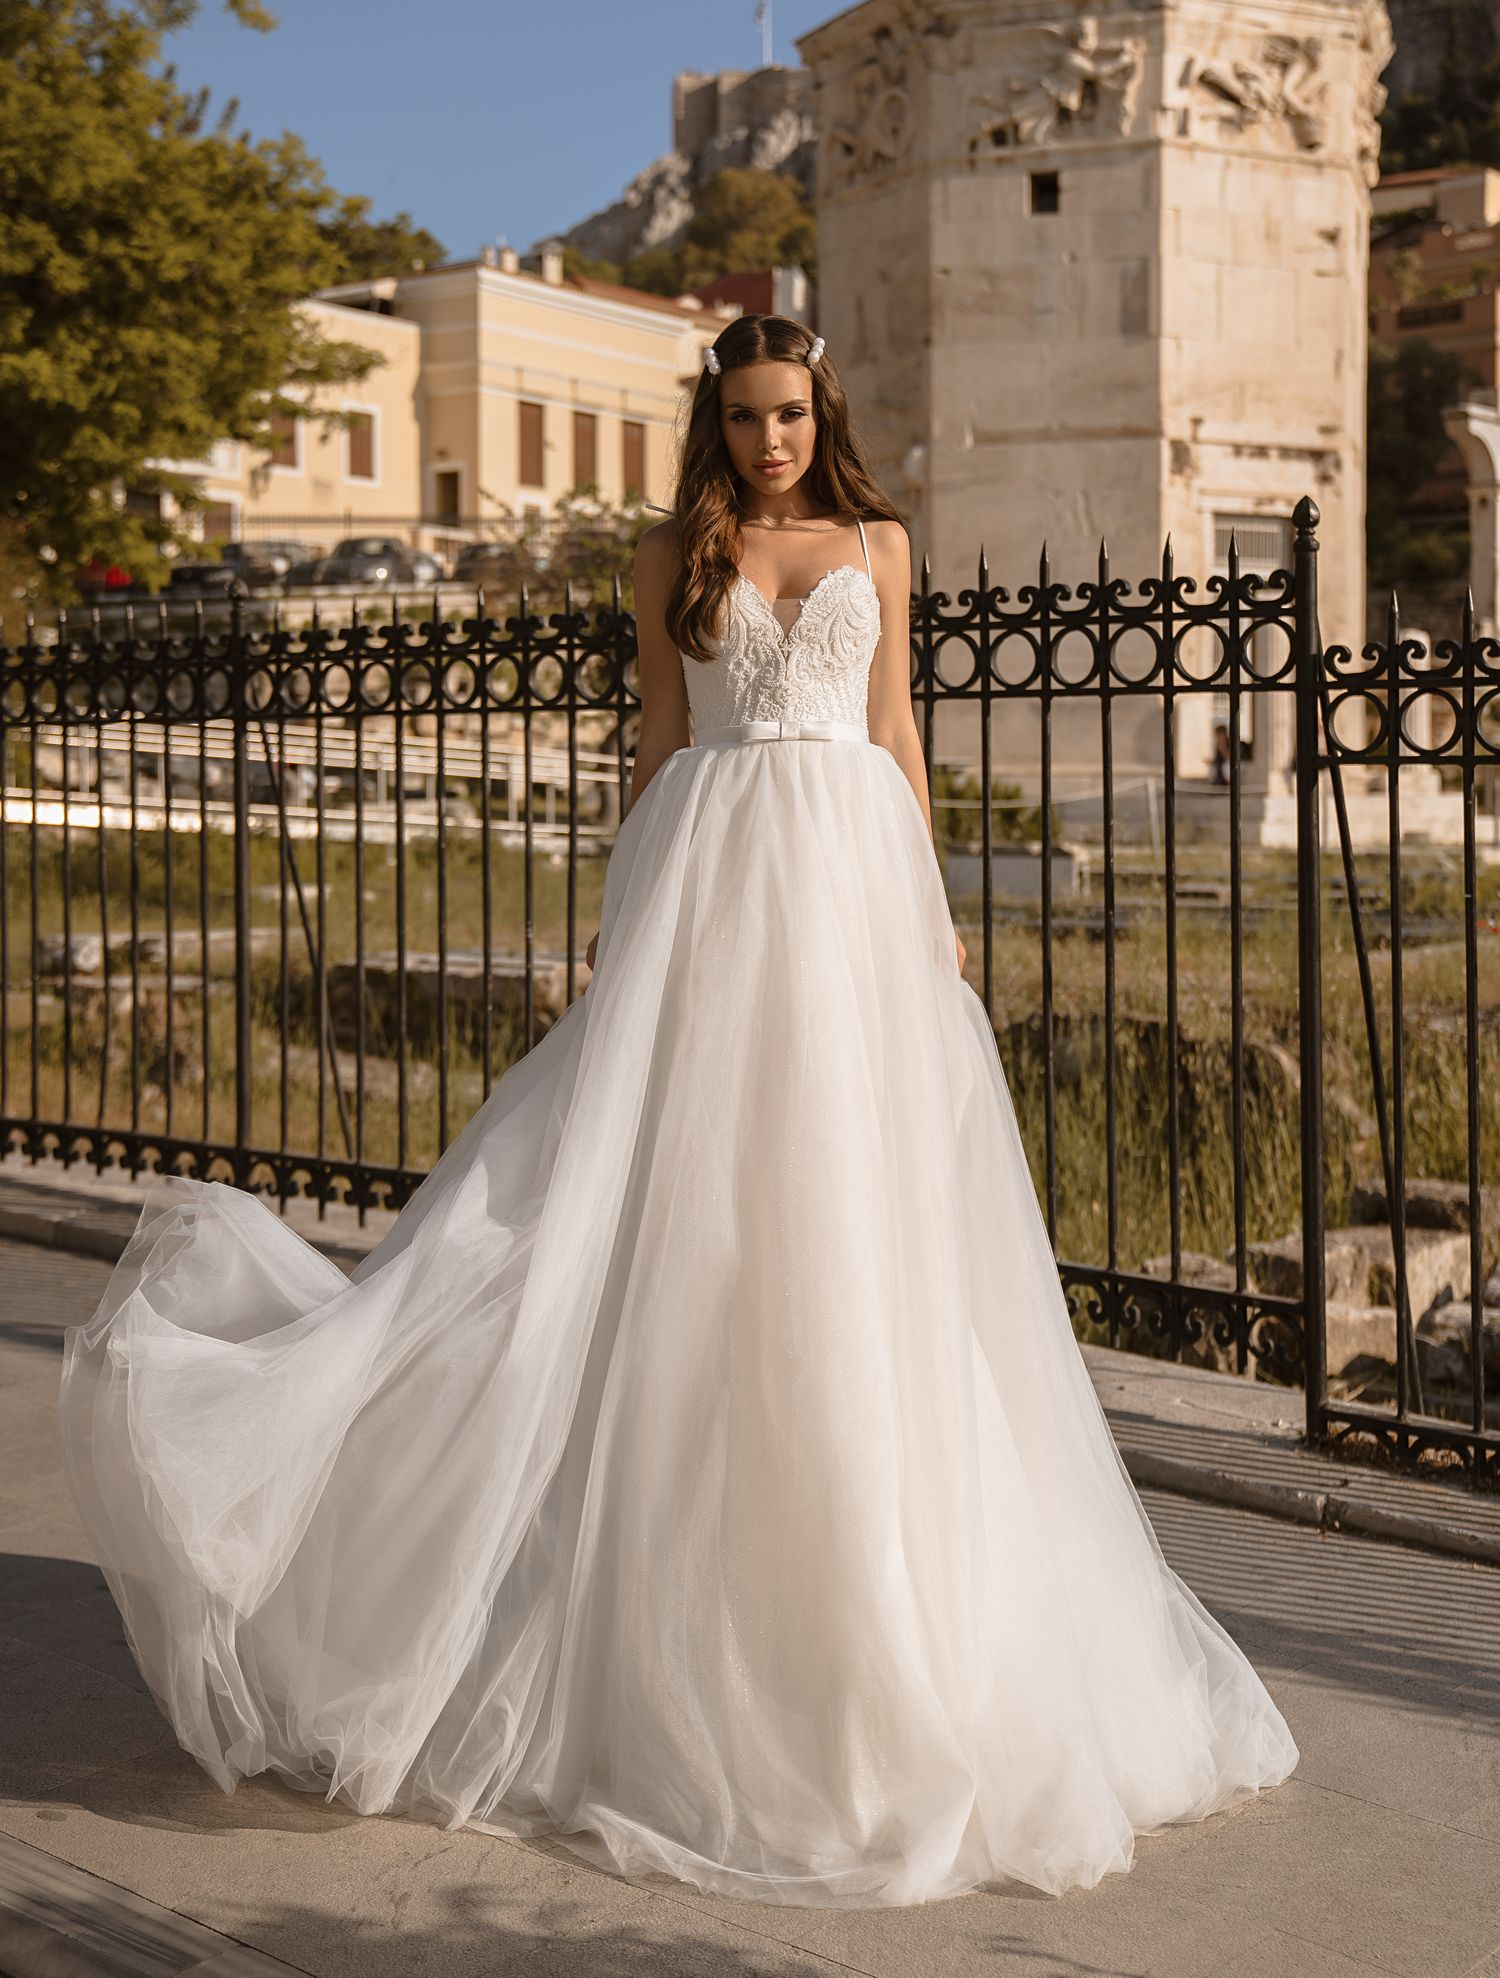 Short wedding dress from manufacturer Supernova wholesale-1